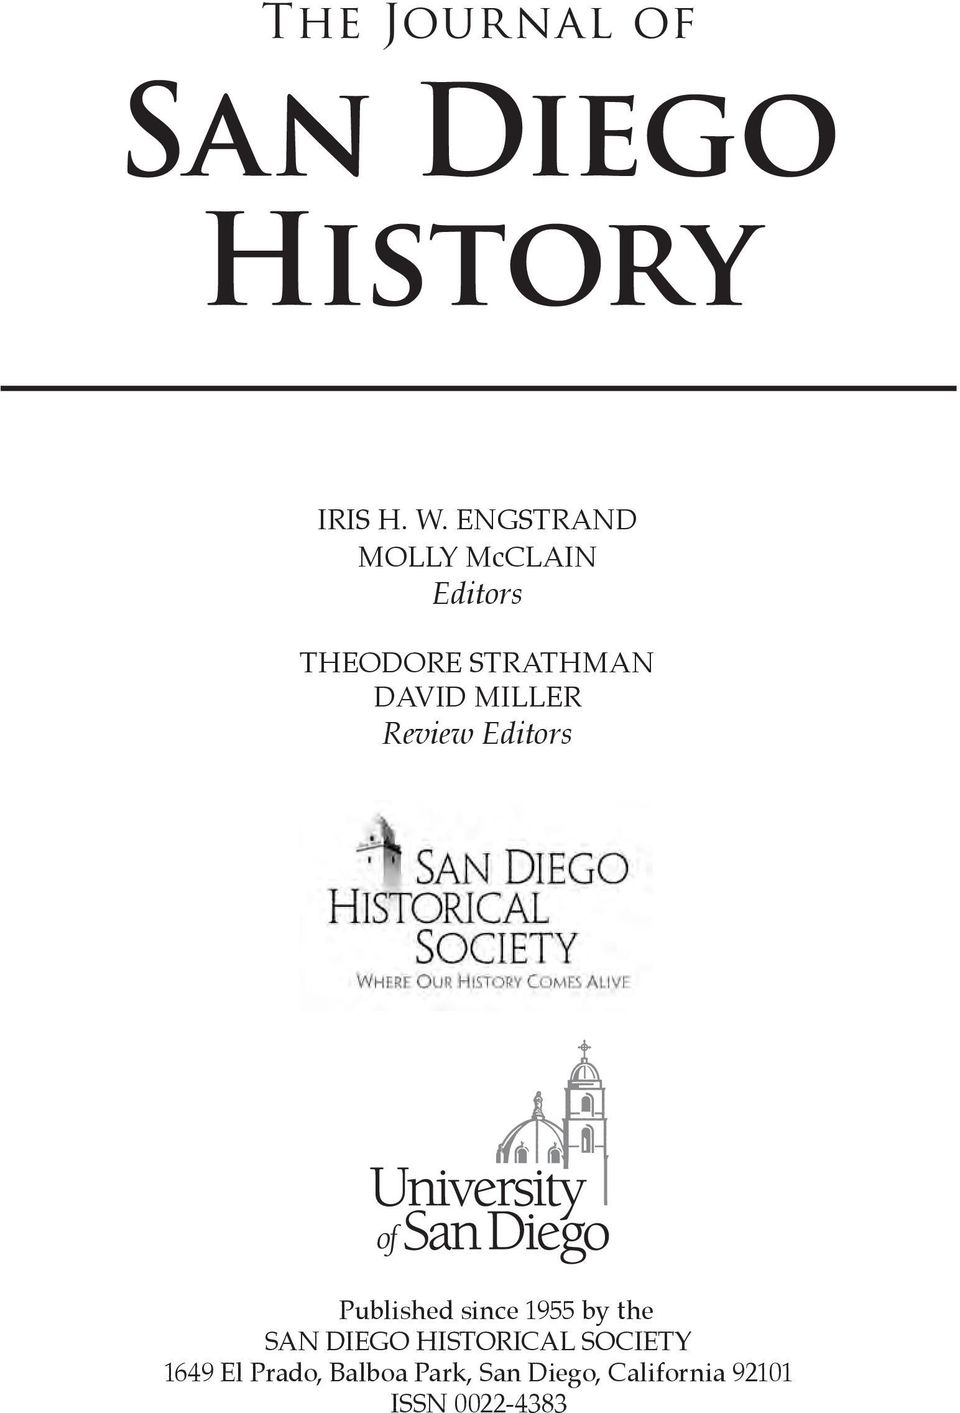 MILLER Review Editors Published since 1955 by the SAN DIEGO